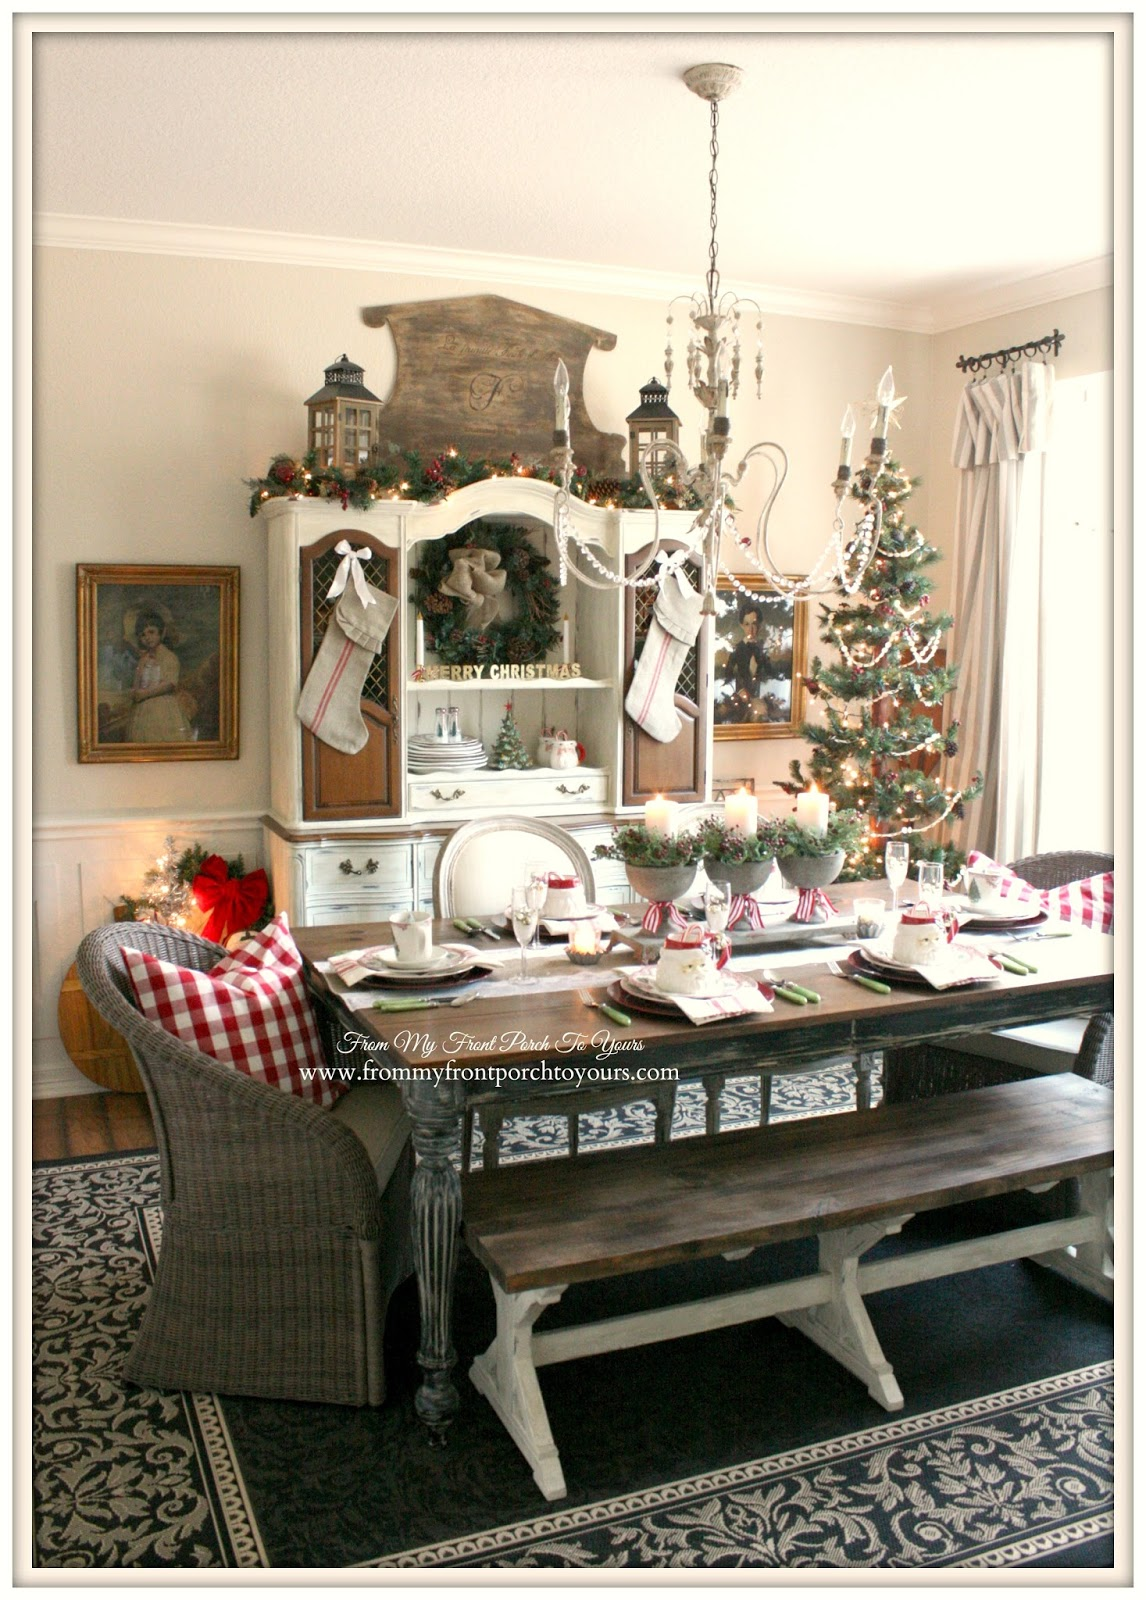 french farmhouse vintage christmas dining room from my front porch to yours - Vintage Farmhouse Christmas Decor